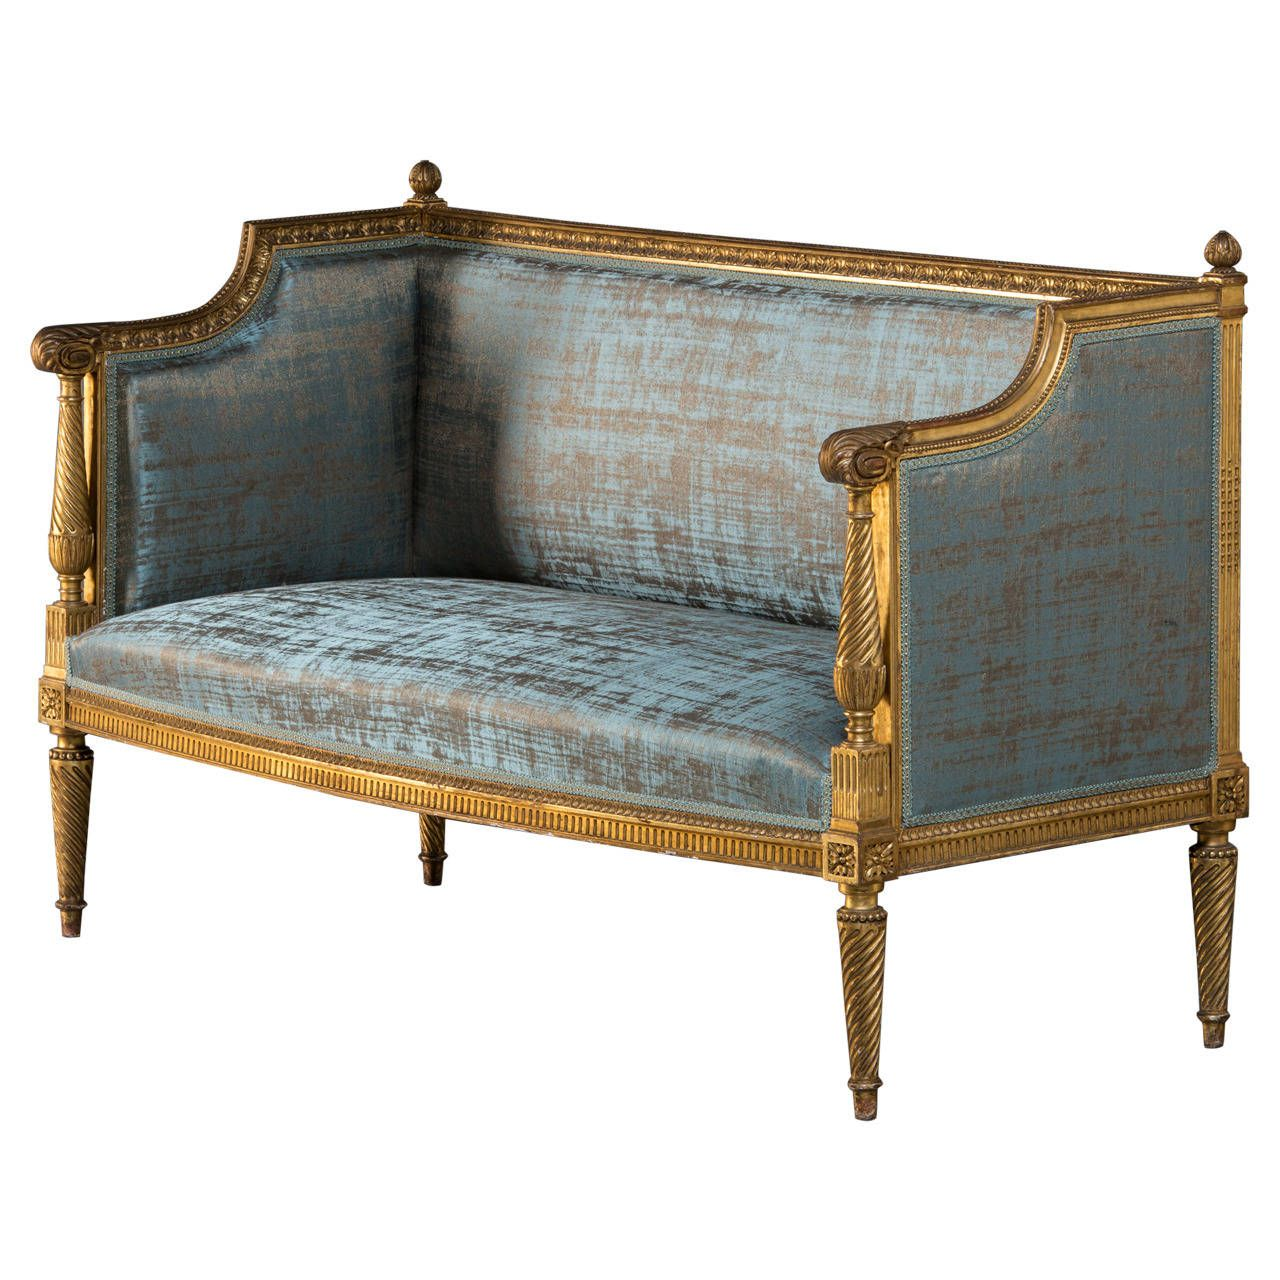 Kanapee Sofa Canape With Original Gilding Louis Xvi Style Furniture